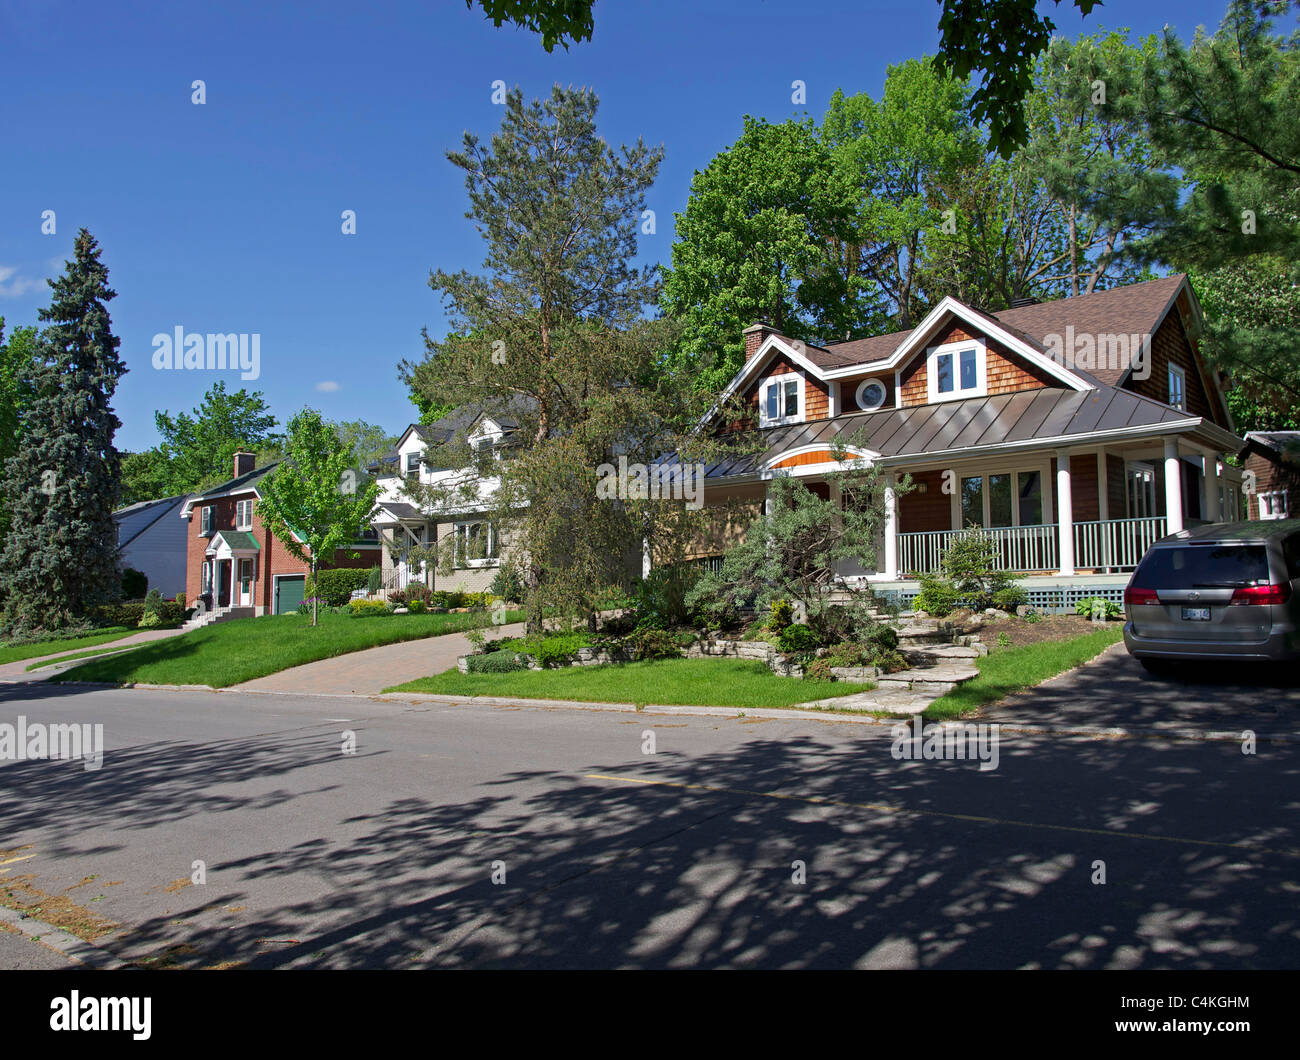 Canadian houses - Stock Image